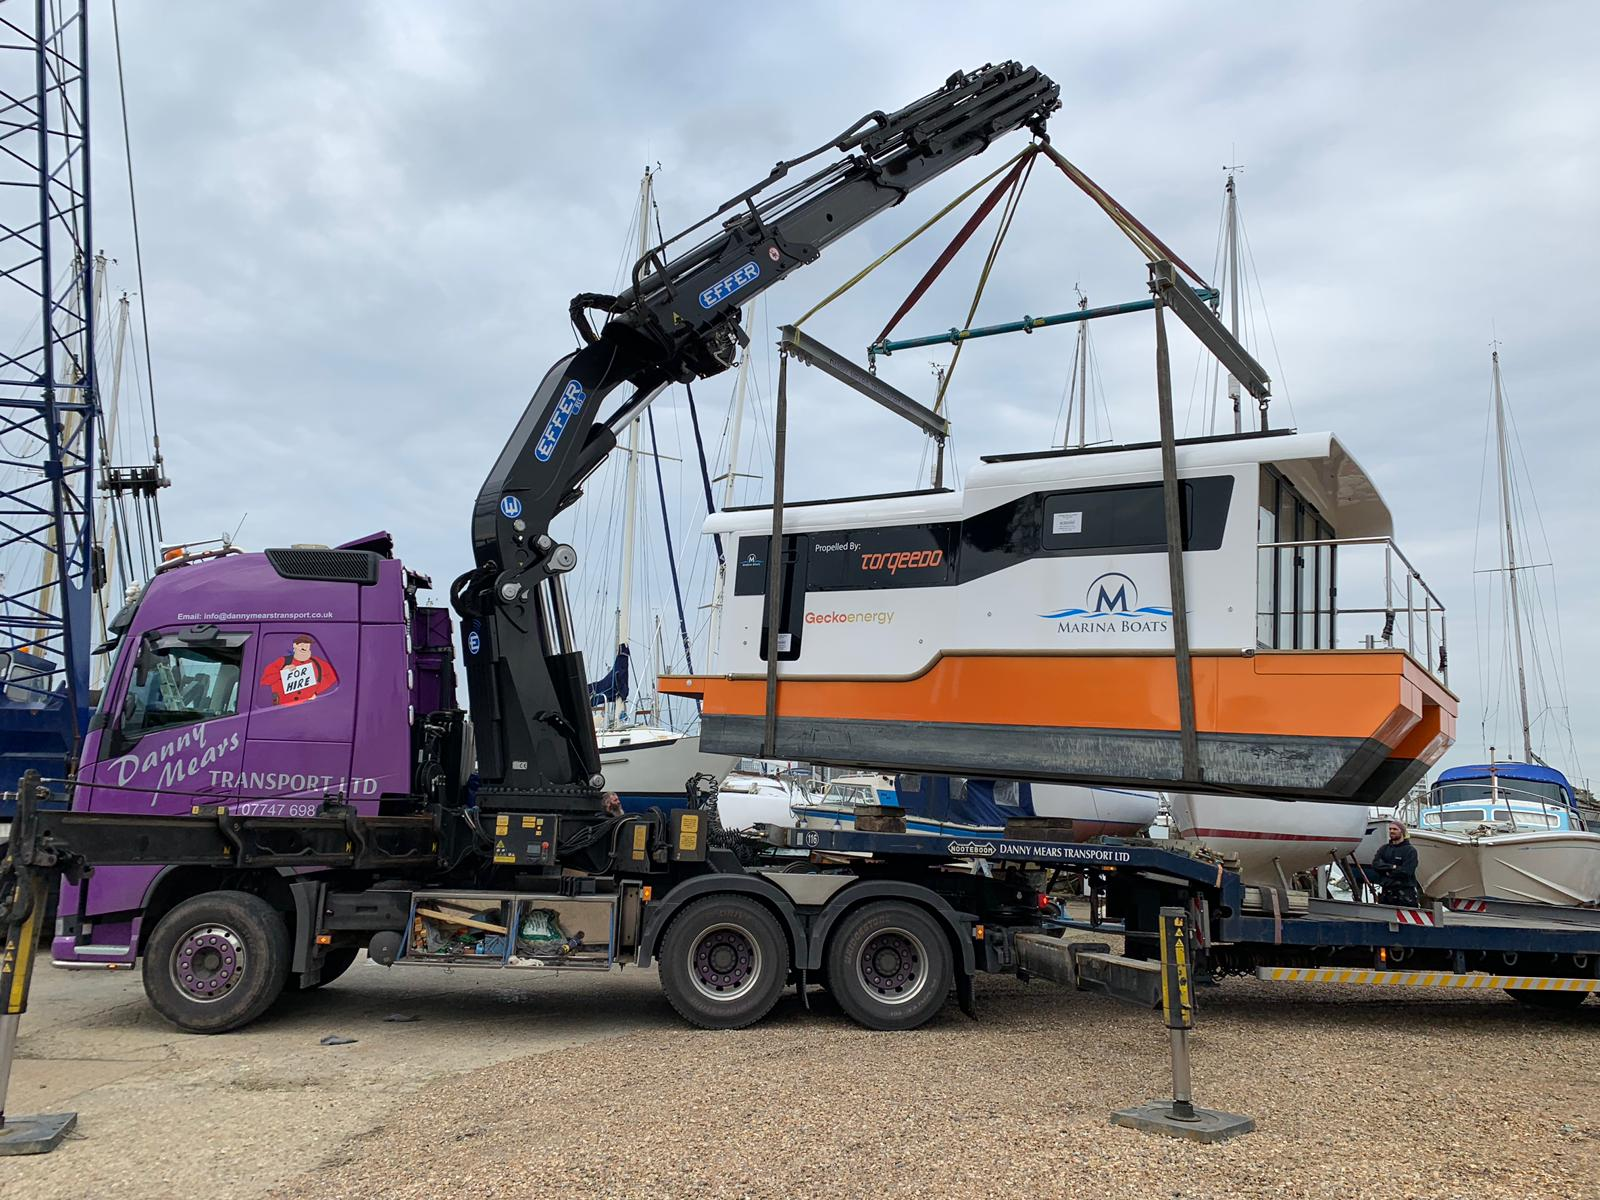 Marina boat being transferred on a crane